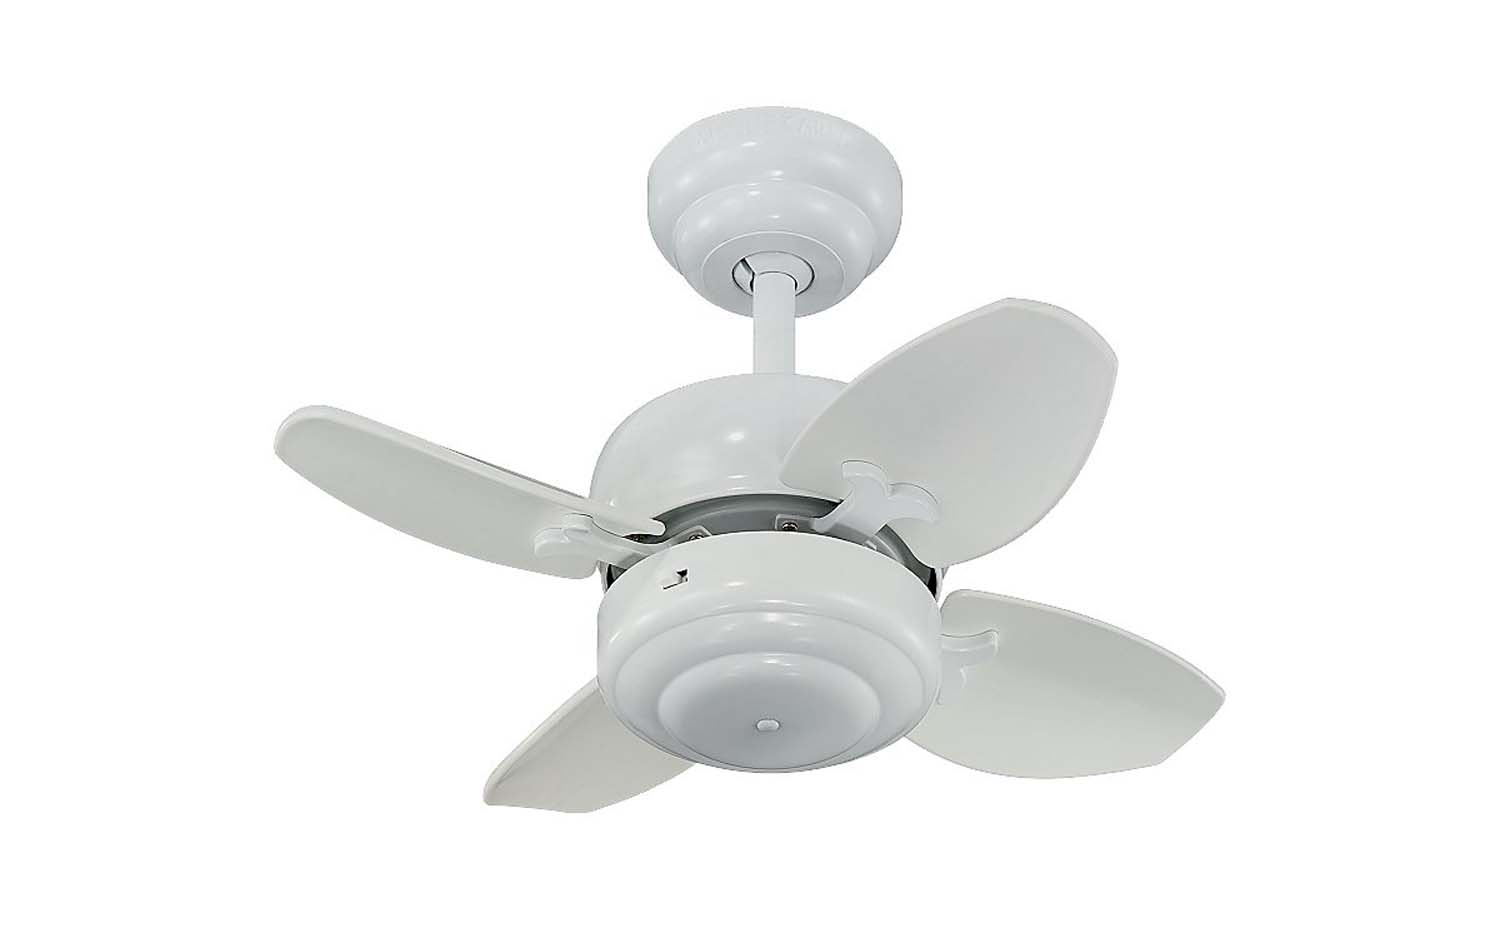 20 inchCeiling Fan from the Mini 20 collection by Monte Carlo 4MC20WH